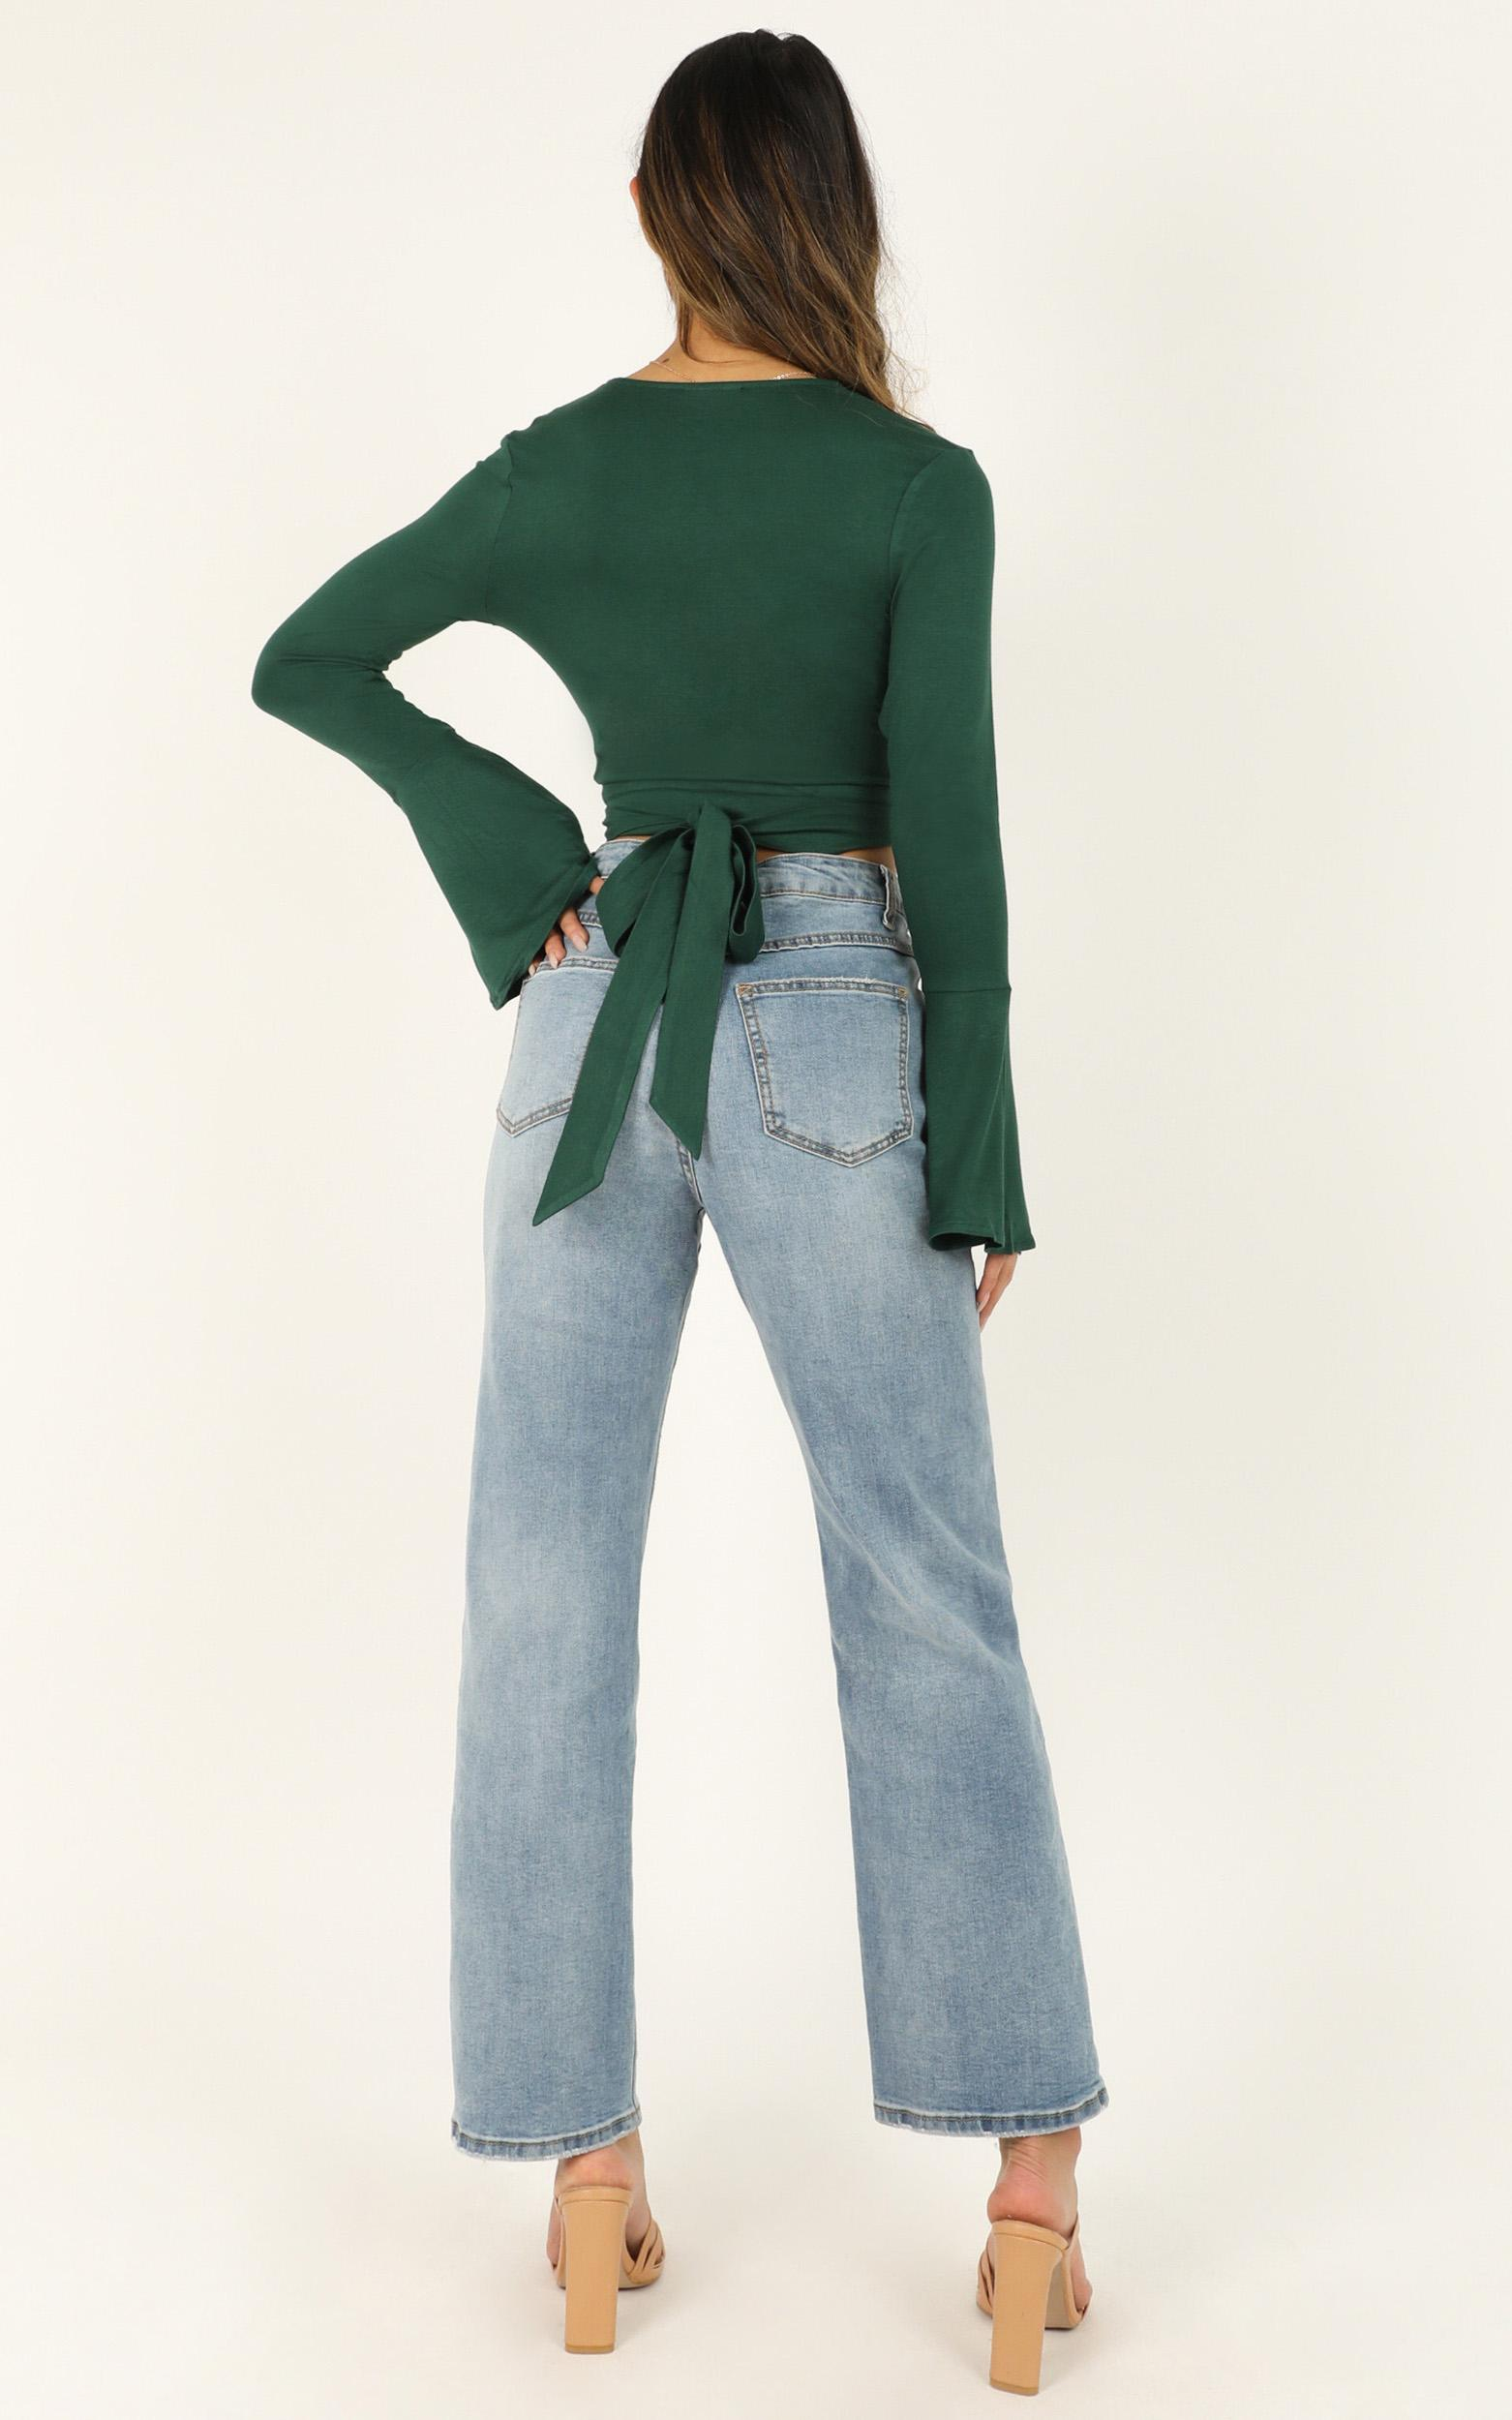 Sunday Drive Top in emerald - 20 (XXXXL), Green, hi-res image number null